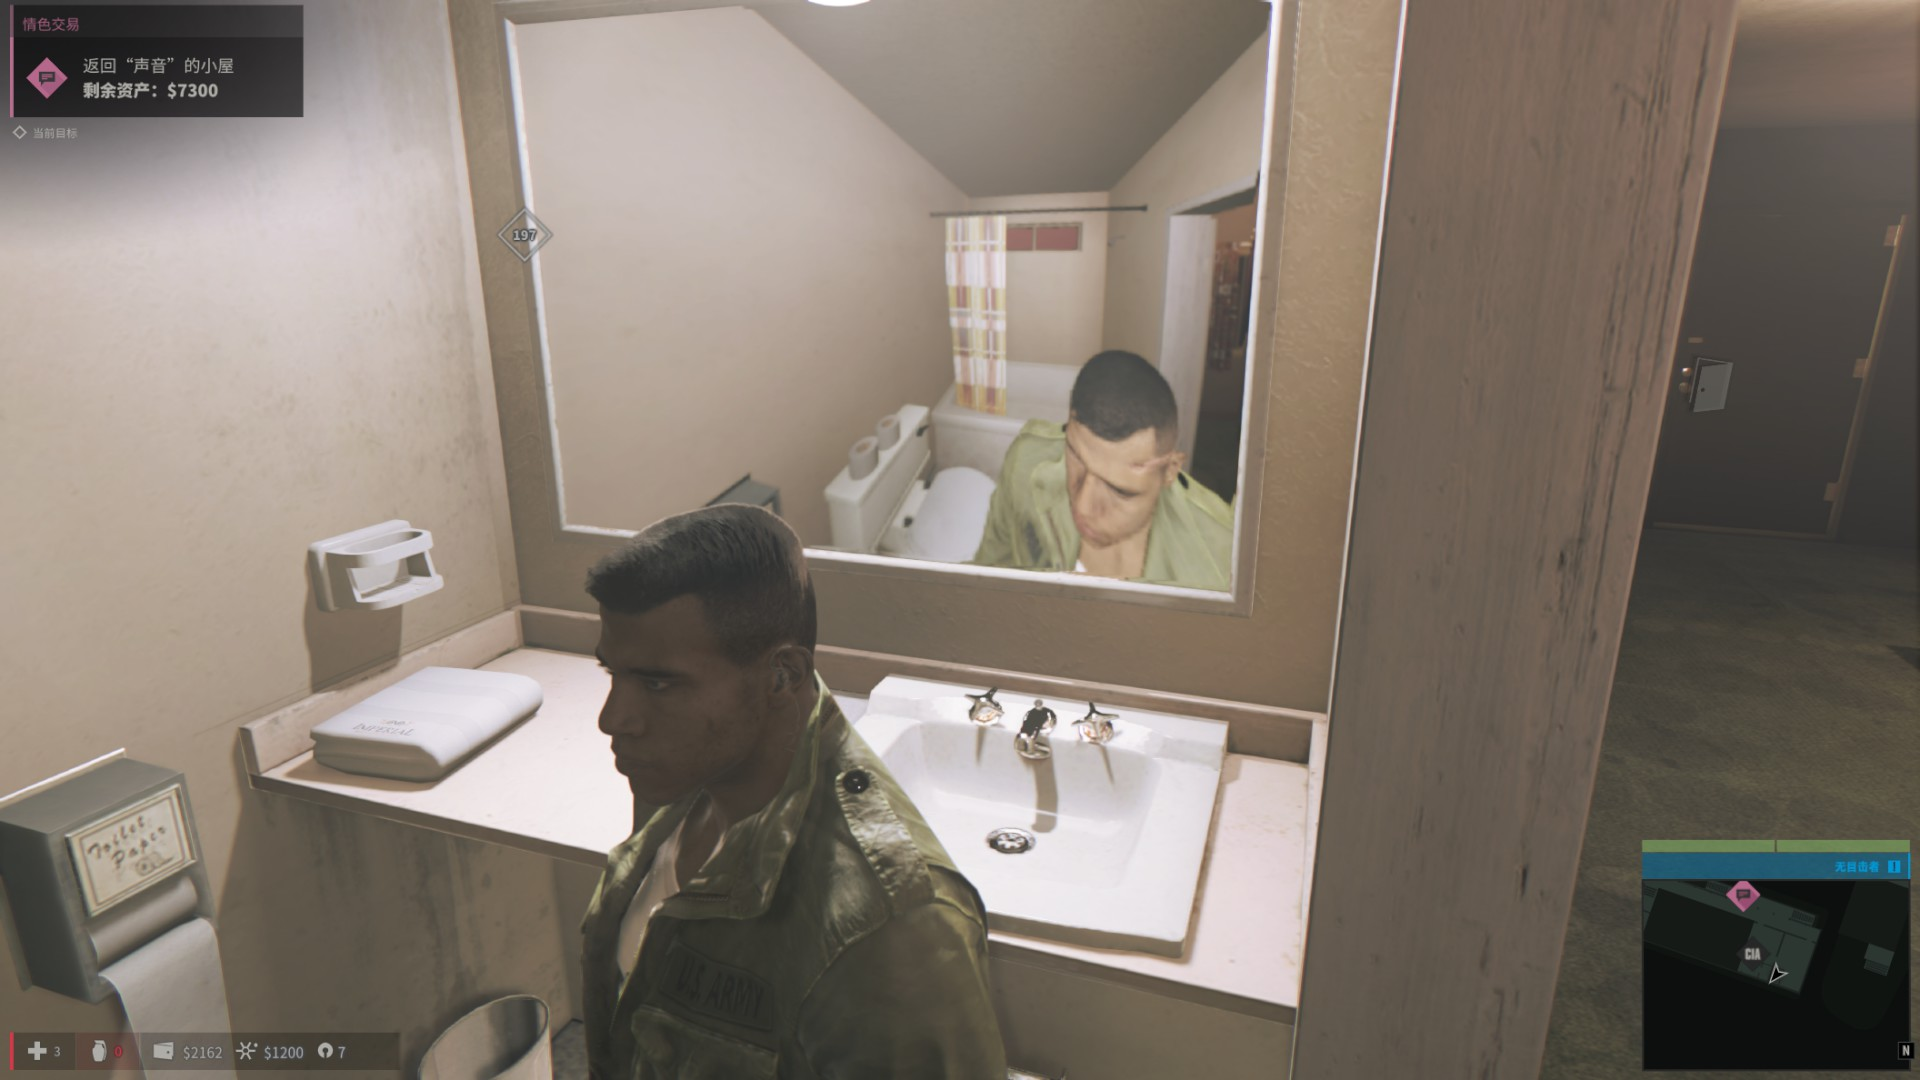 mafia_3_graphical_glitches_mirror_2